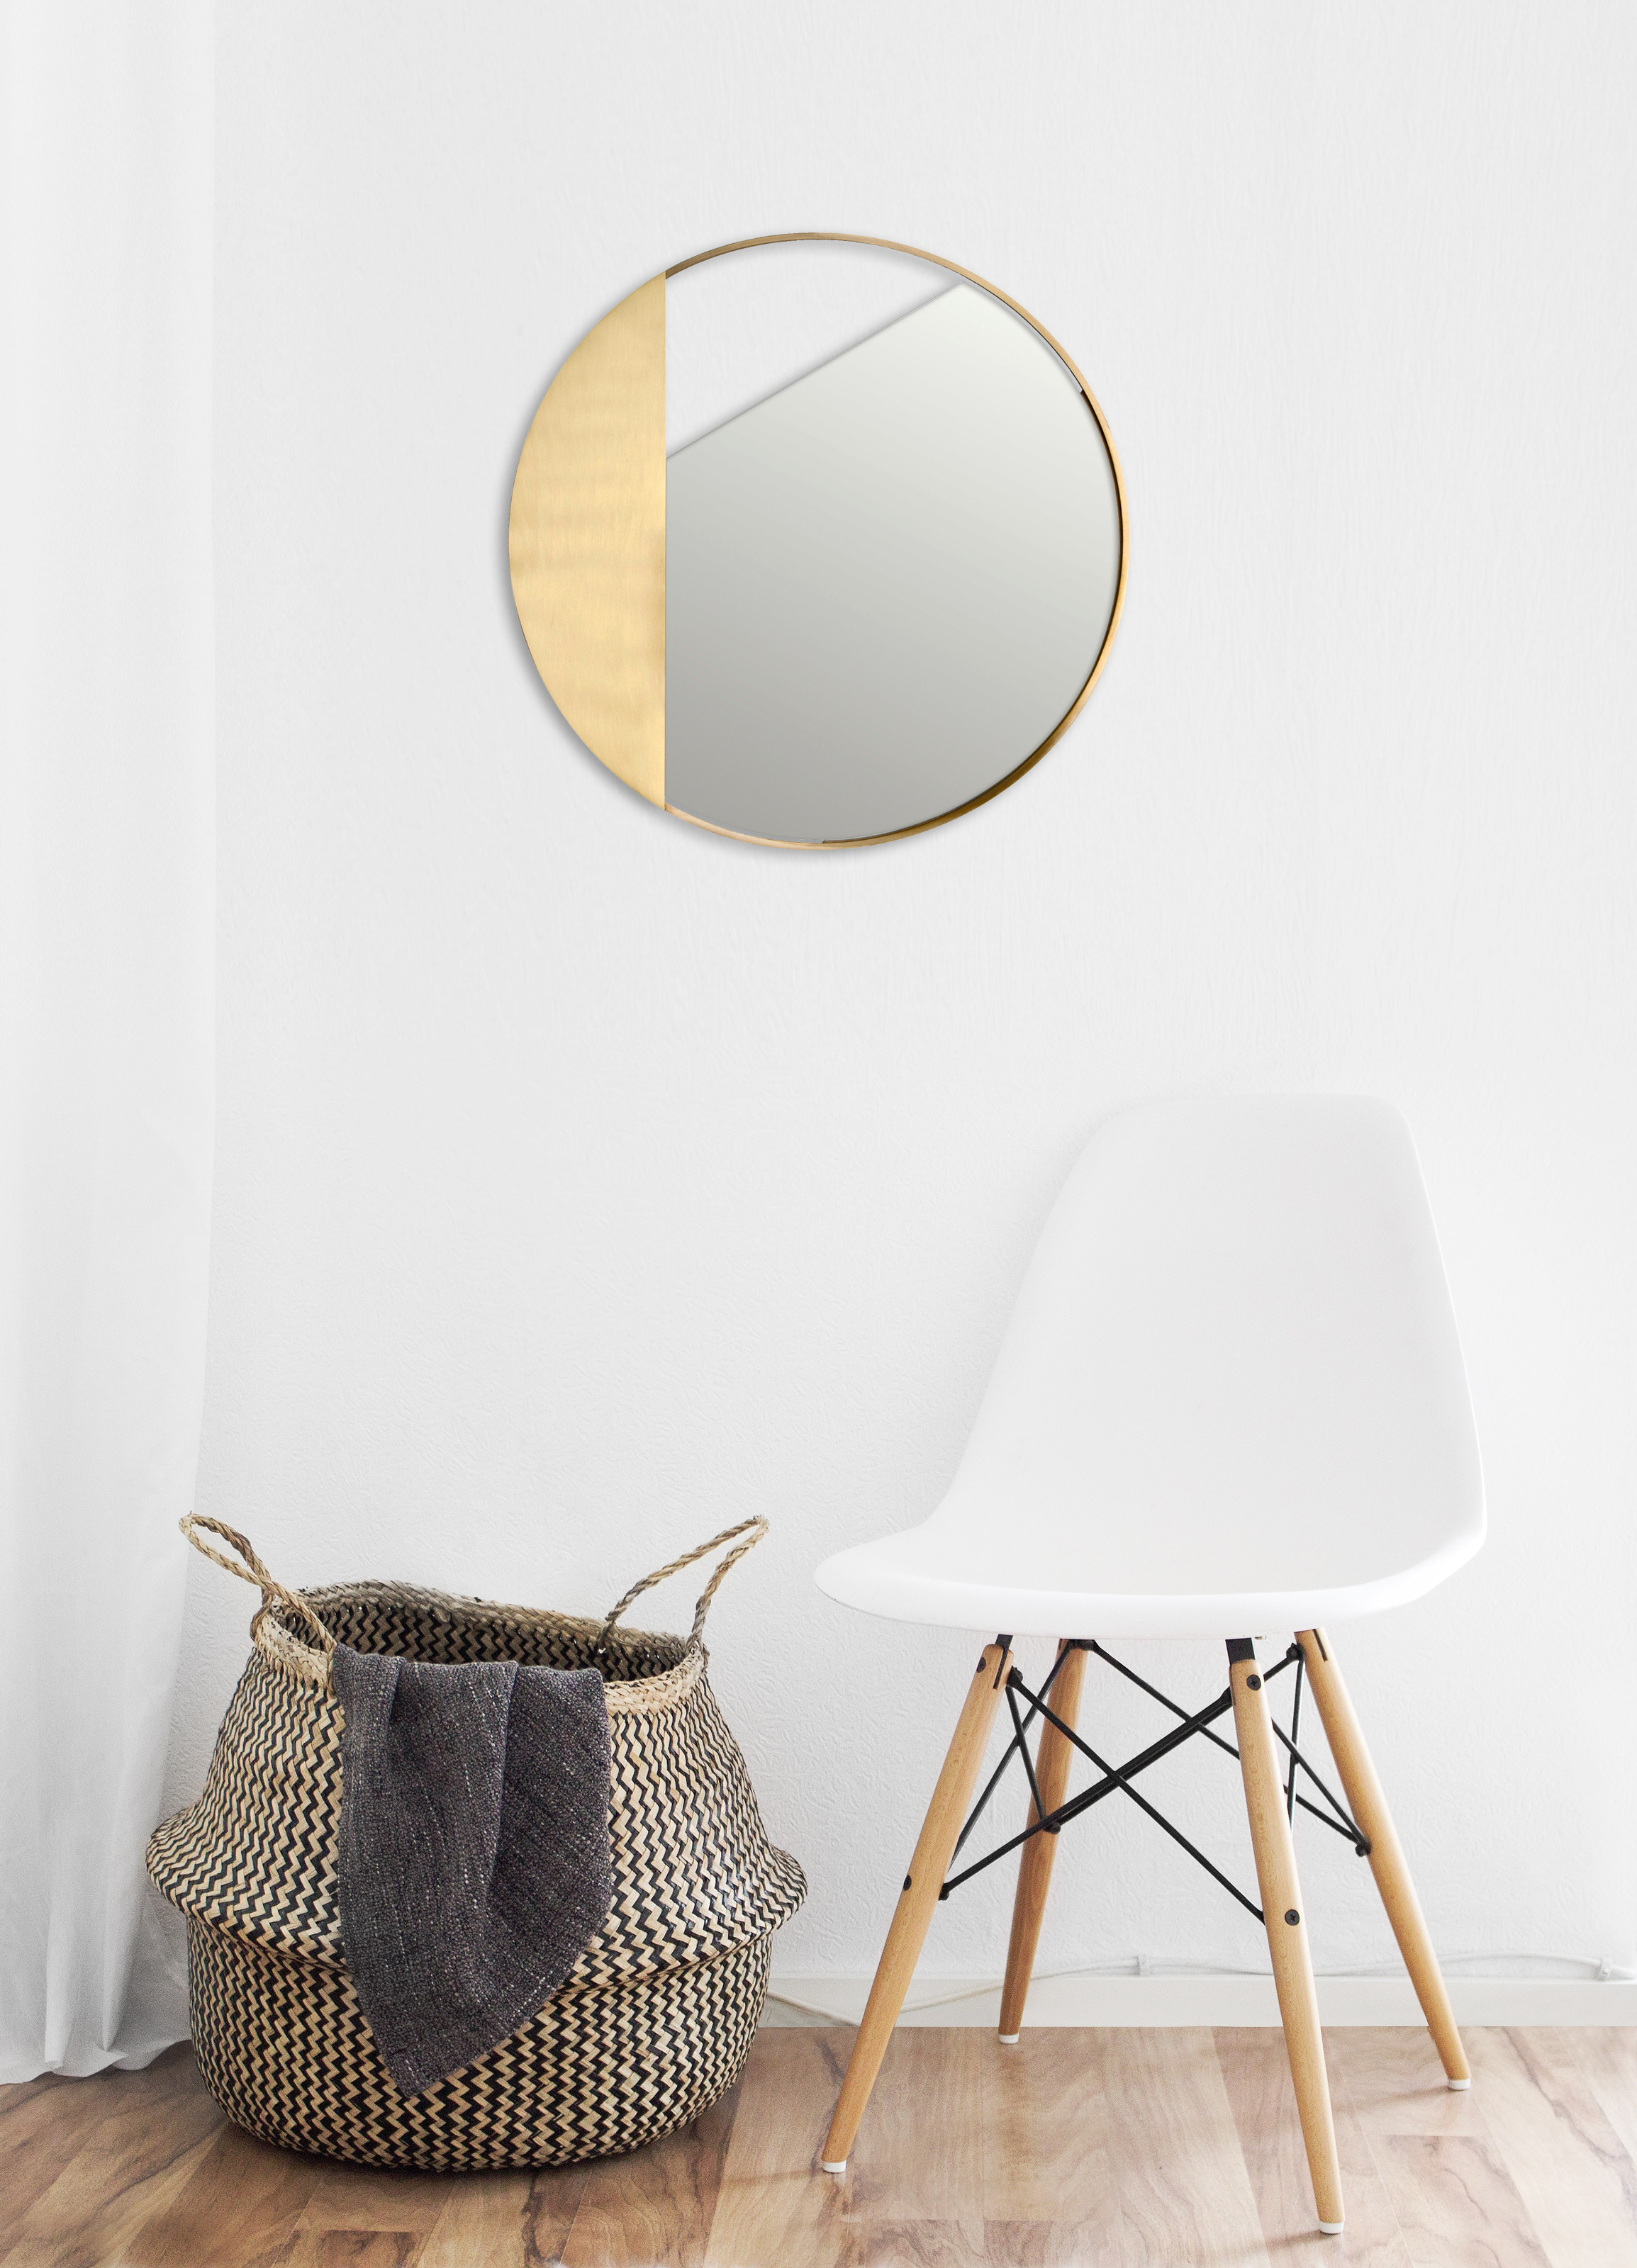 Revolution Mirror no.1 - Three wall mirrors characterized by a clean and rigorous design. The frame in brushed brass encloses a round mirror, mounted at different angles to create a new design every time. The balance created between the parts creates a delicate graphic effect that transforms the mirror into a sort of wall jewel. Handmade in Italy by skilled craftsmen.  | Matter of Stuff